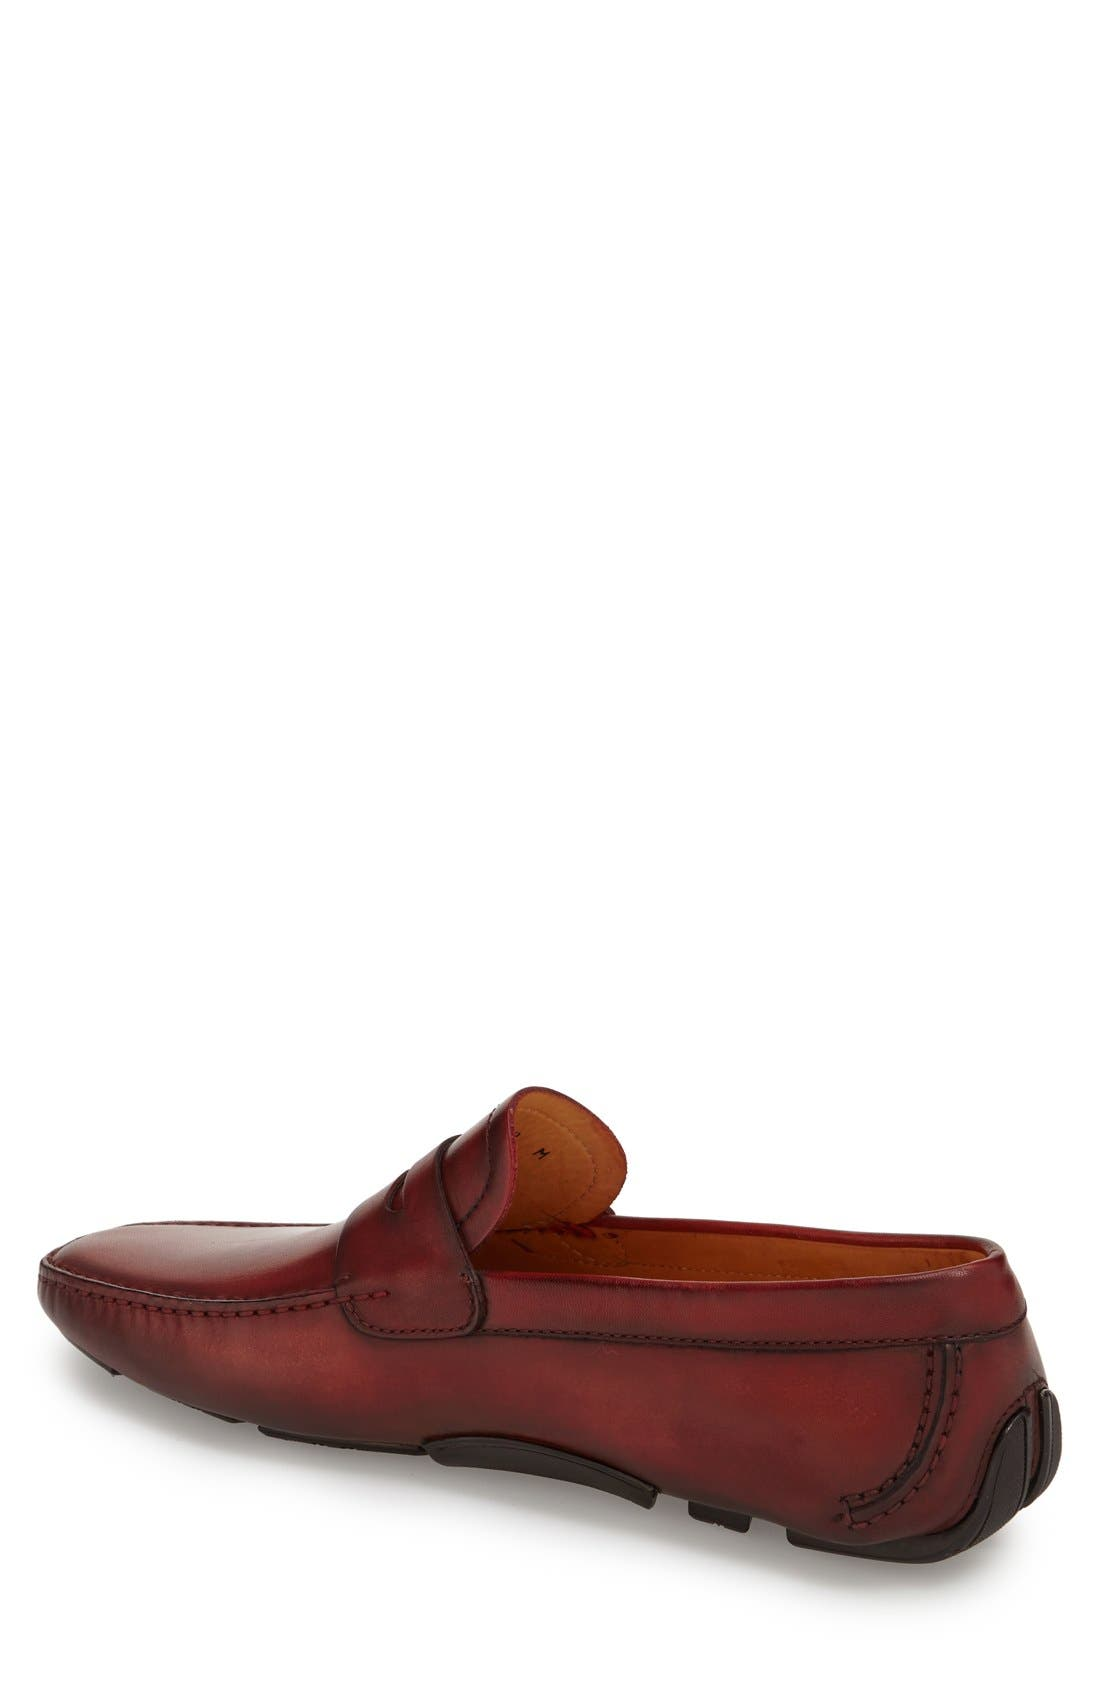 'Dylan' Leather Driving Shoe,                             Alternate thumbnail 18, color,